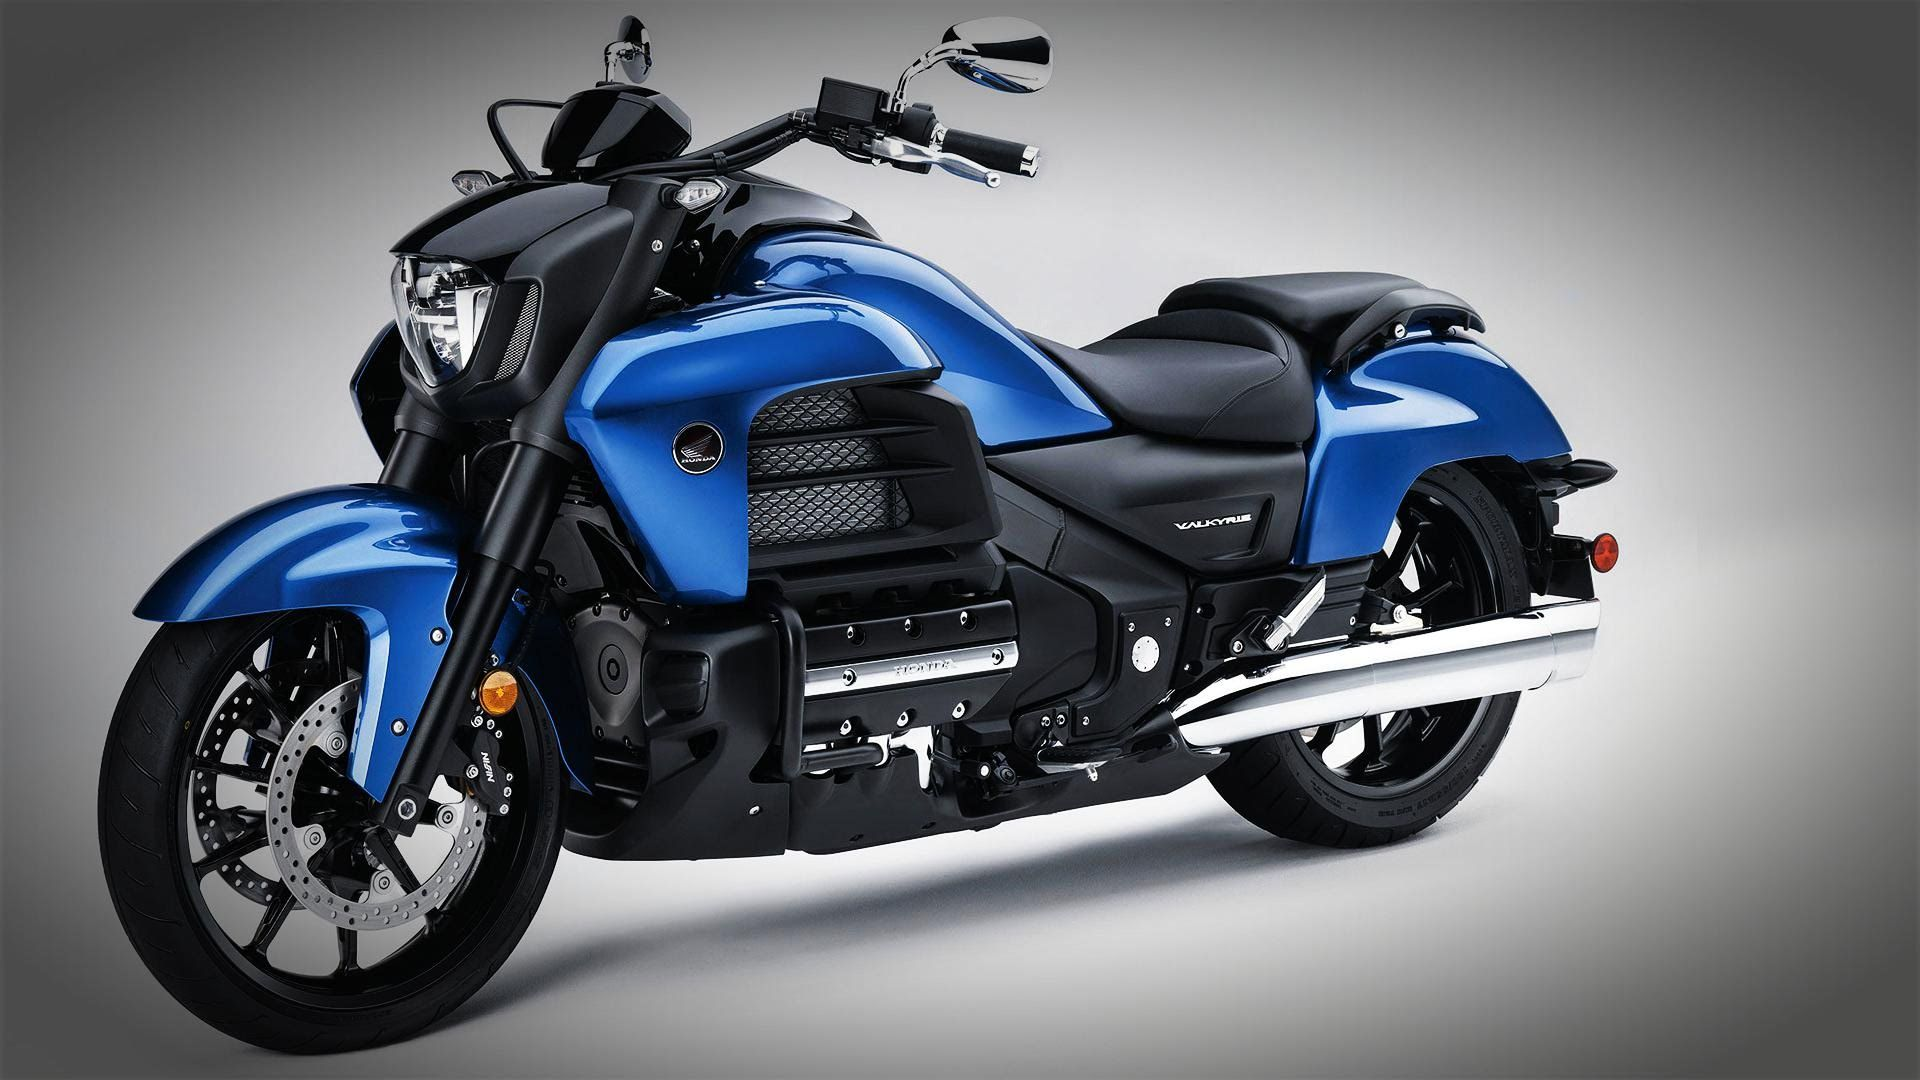 2016 honda goldwing f6c valkyrie more outrageous than any two wheelers on the road